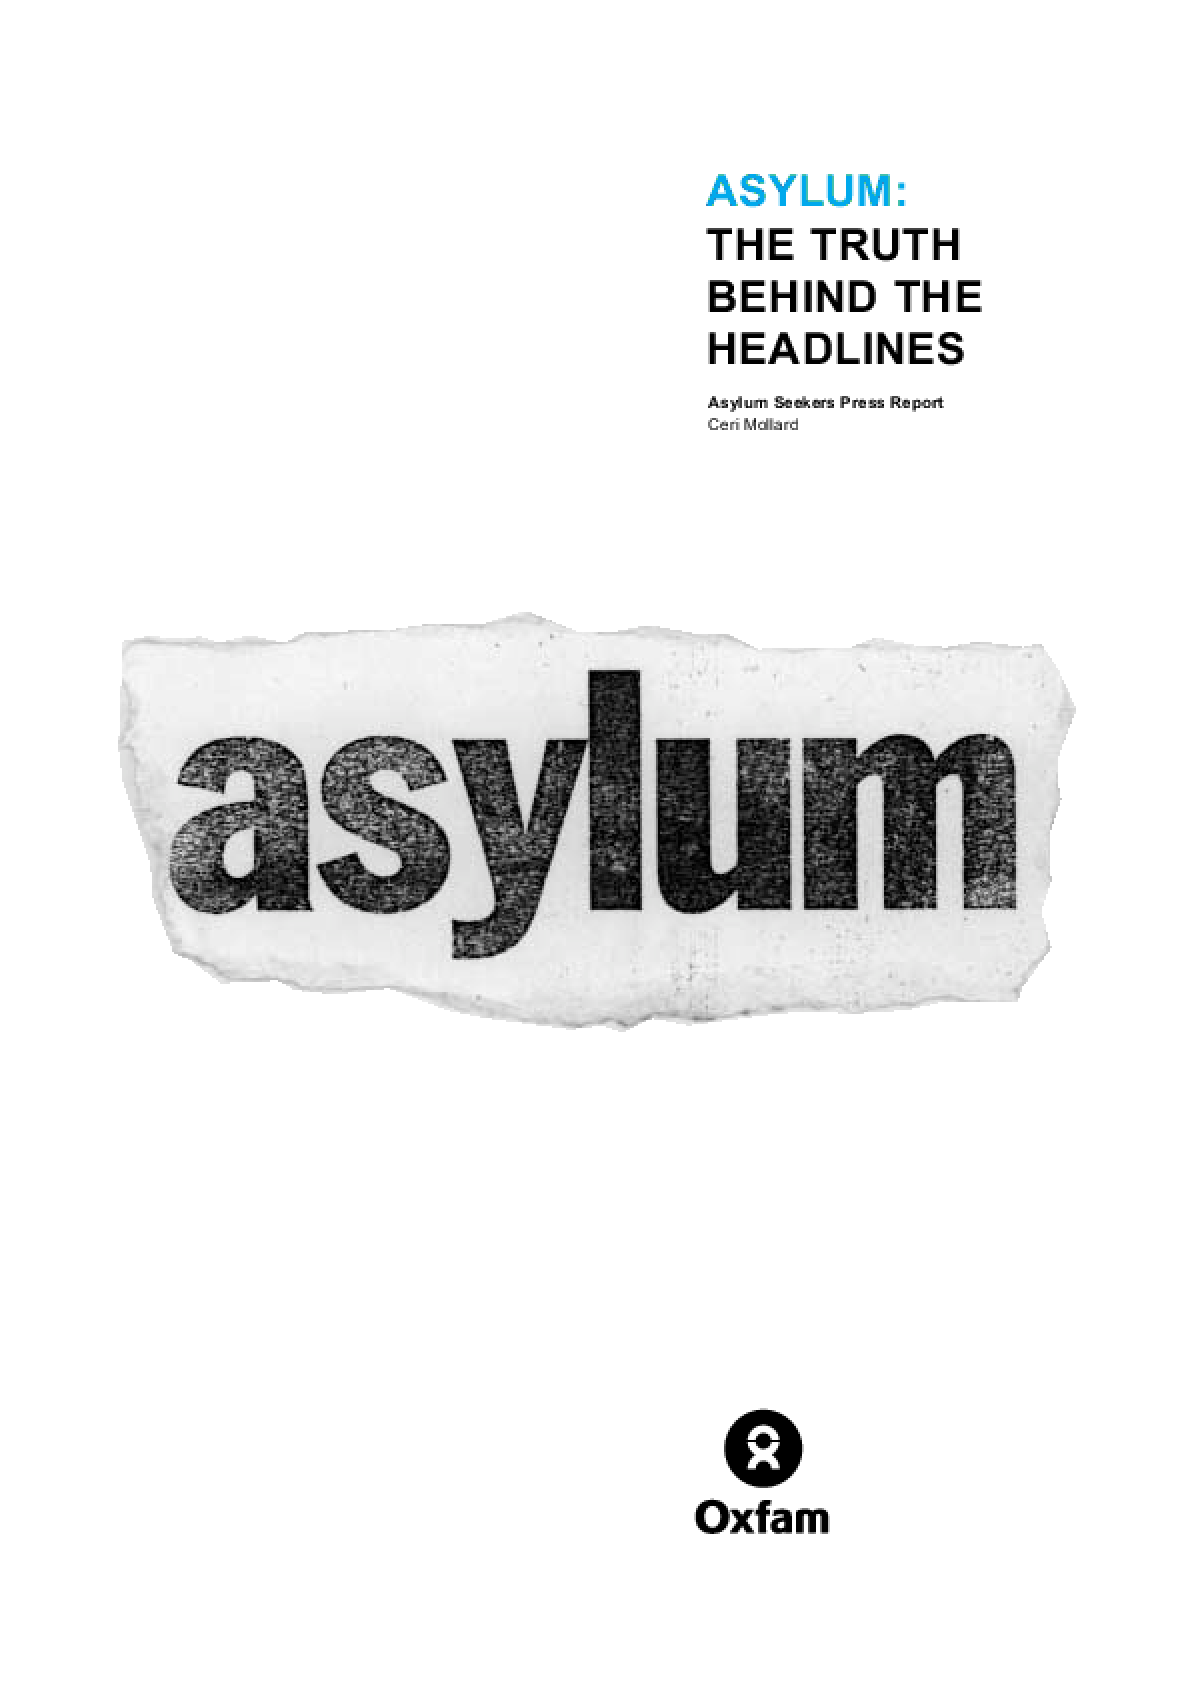 Asylum: The truth behind the headlines